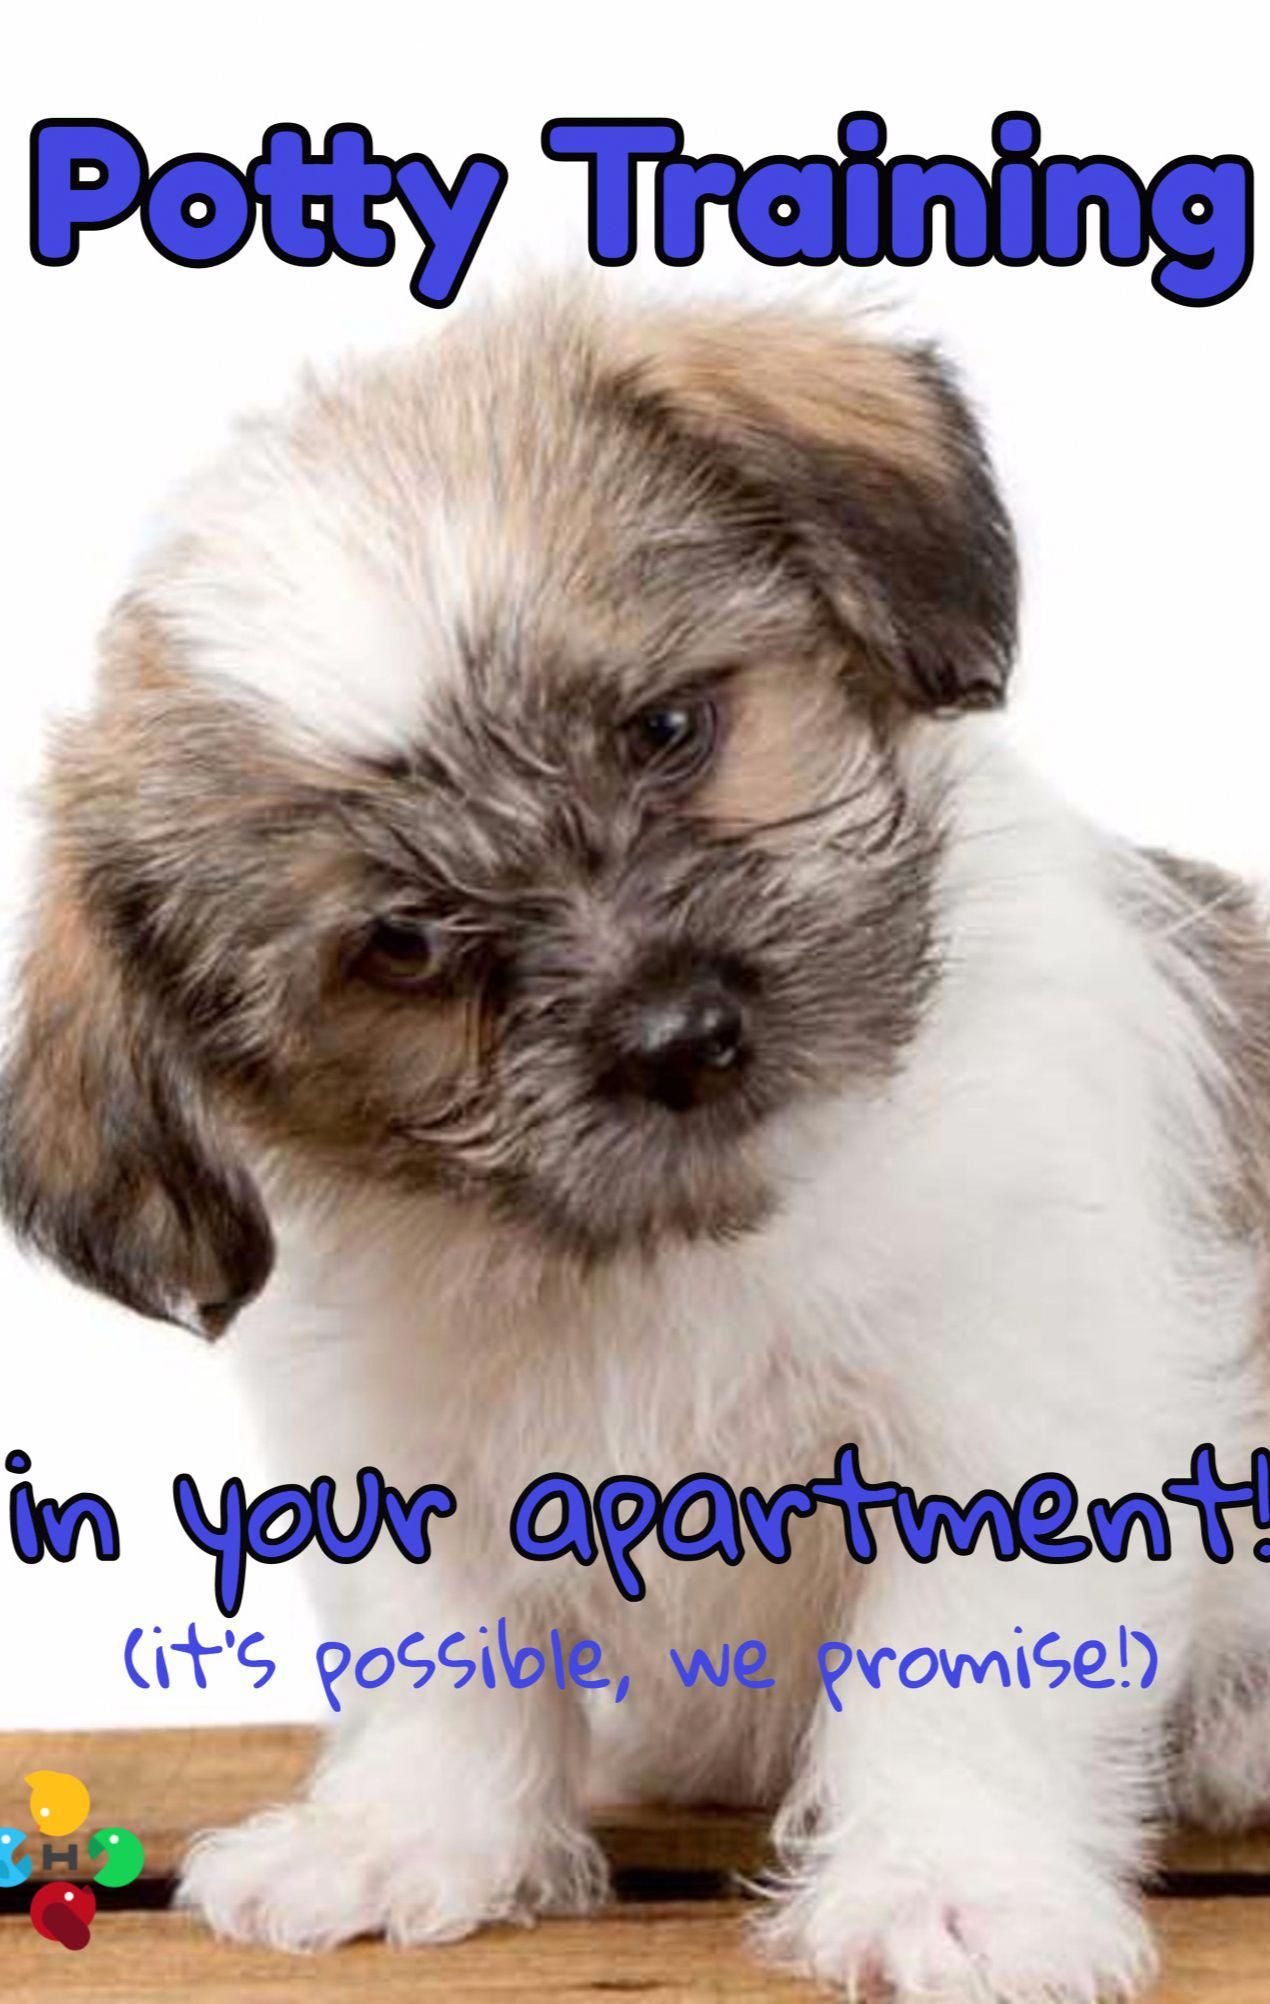 How To Potty Train Your New Puppy When You Live In An Apartment